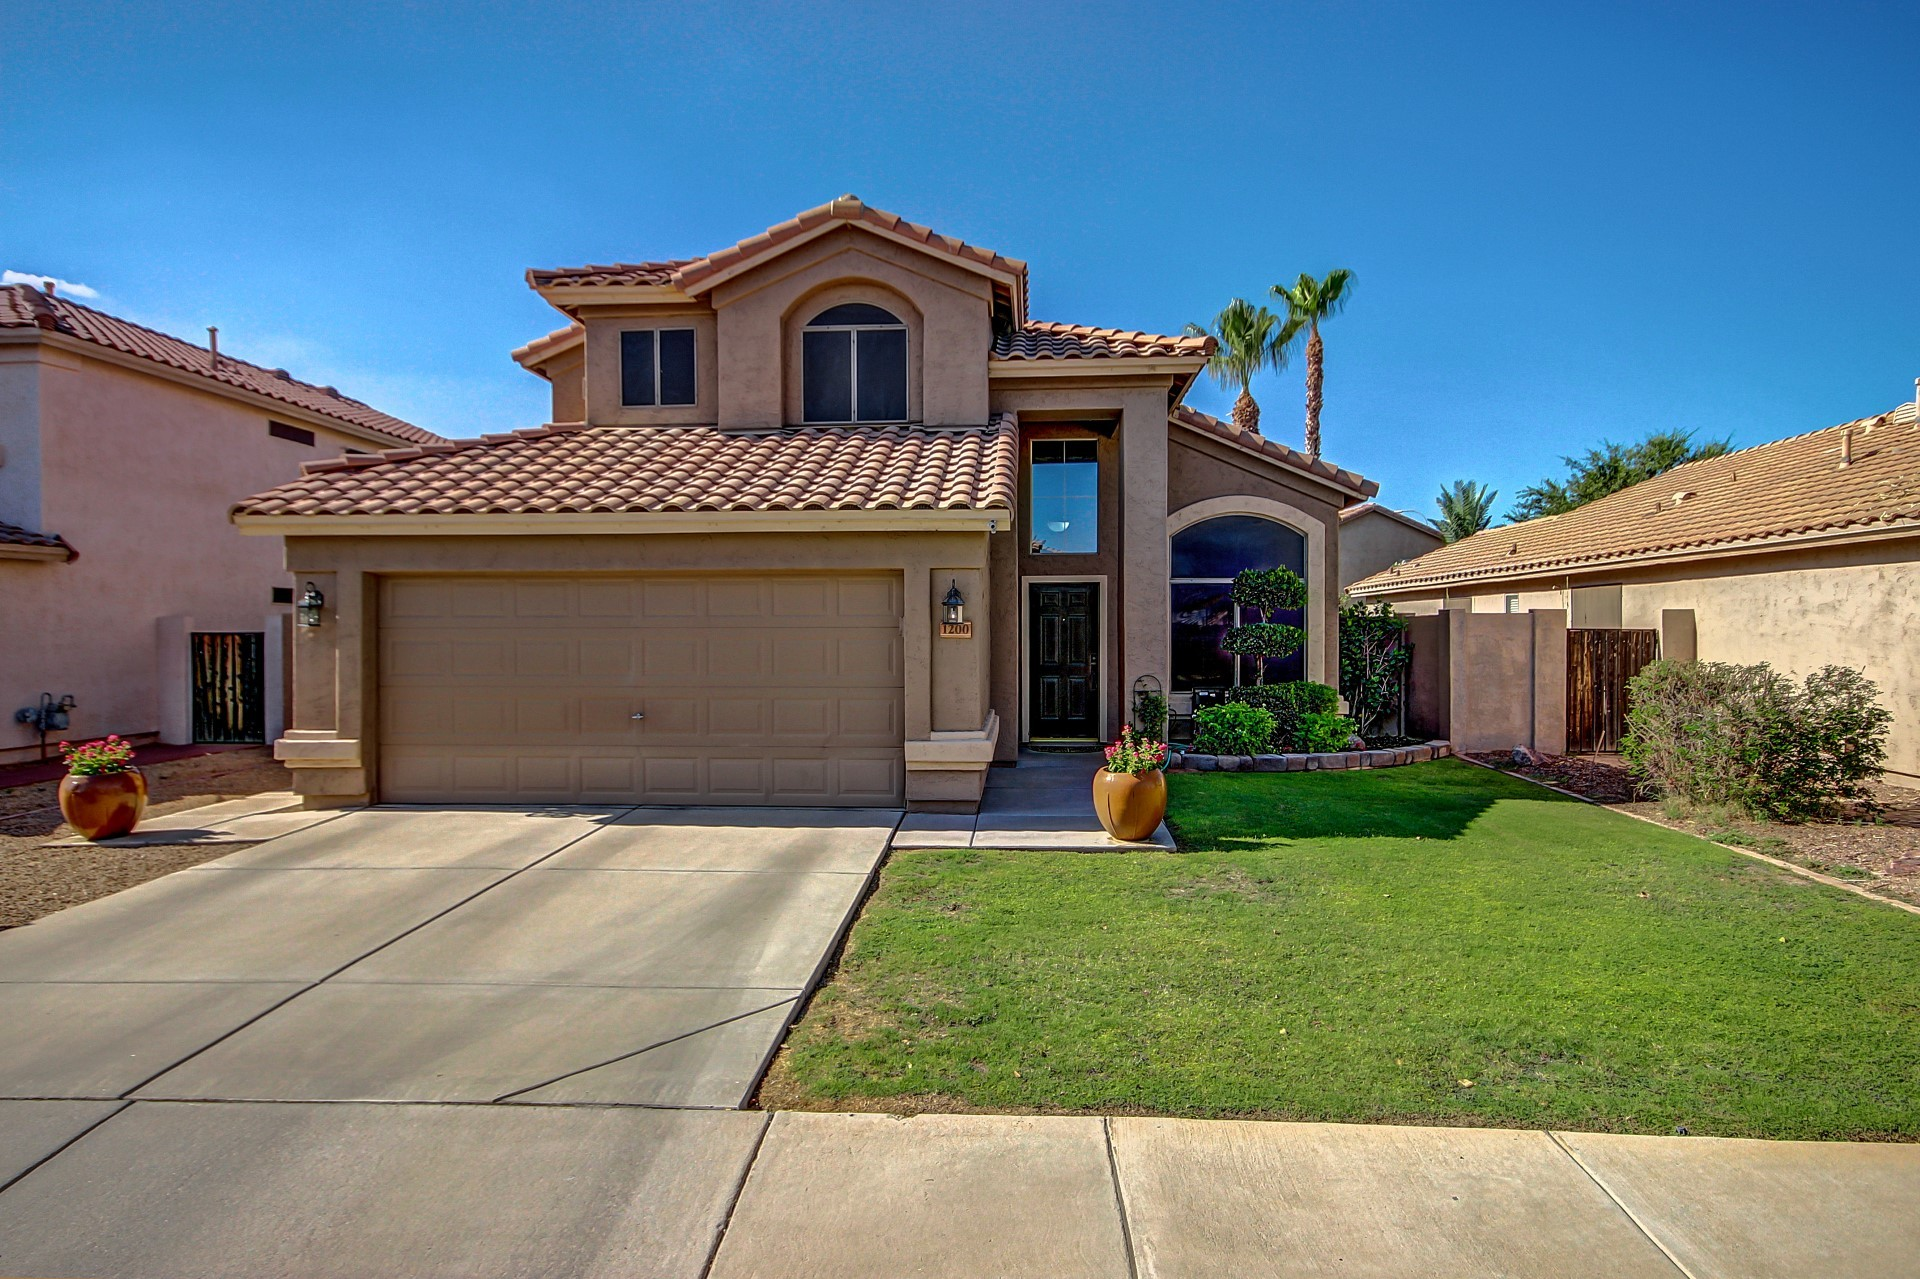 Strange 1200 W Seagull Dr Chandler Az Tempe Real Estate Agent Download Free Architecture Designs Scobabritishbridgeorg